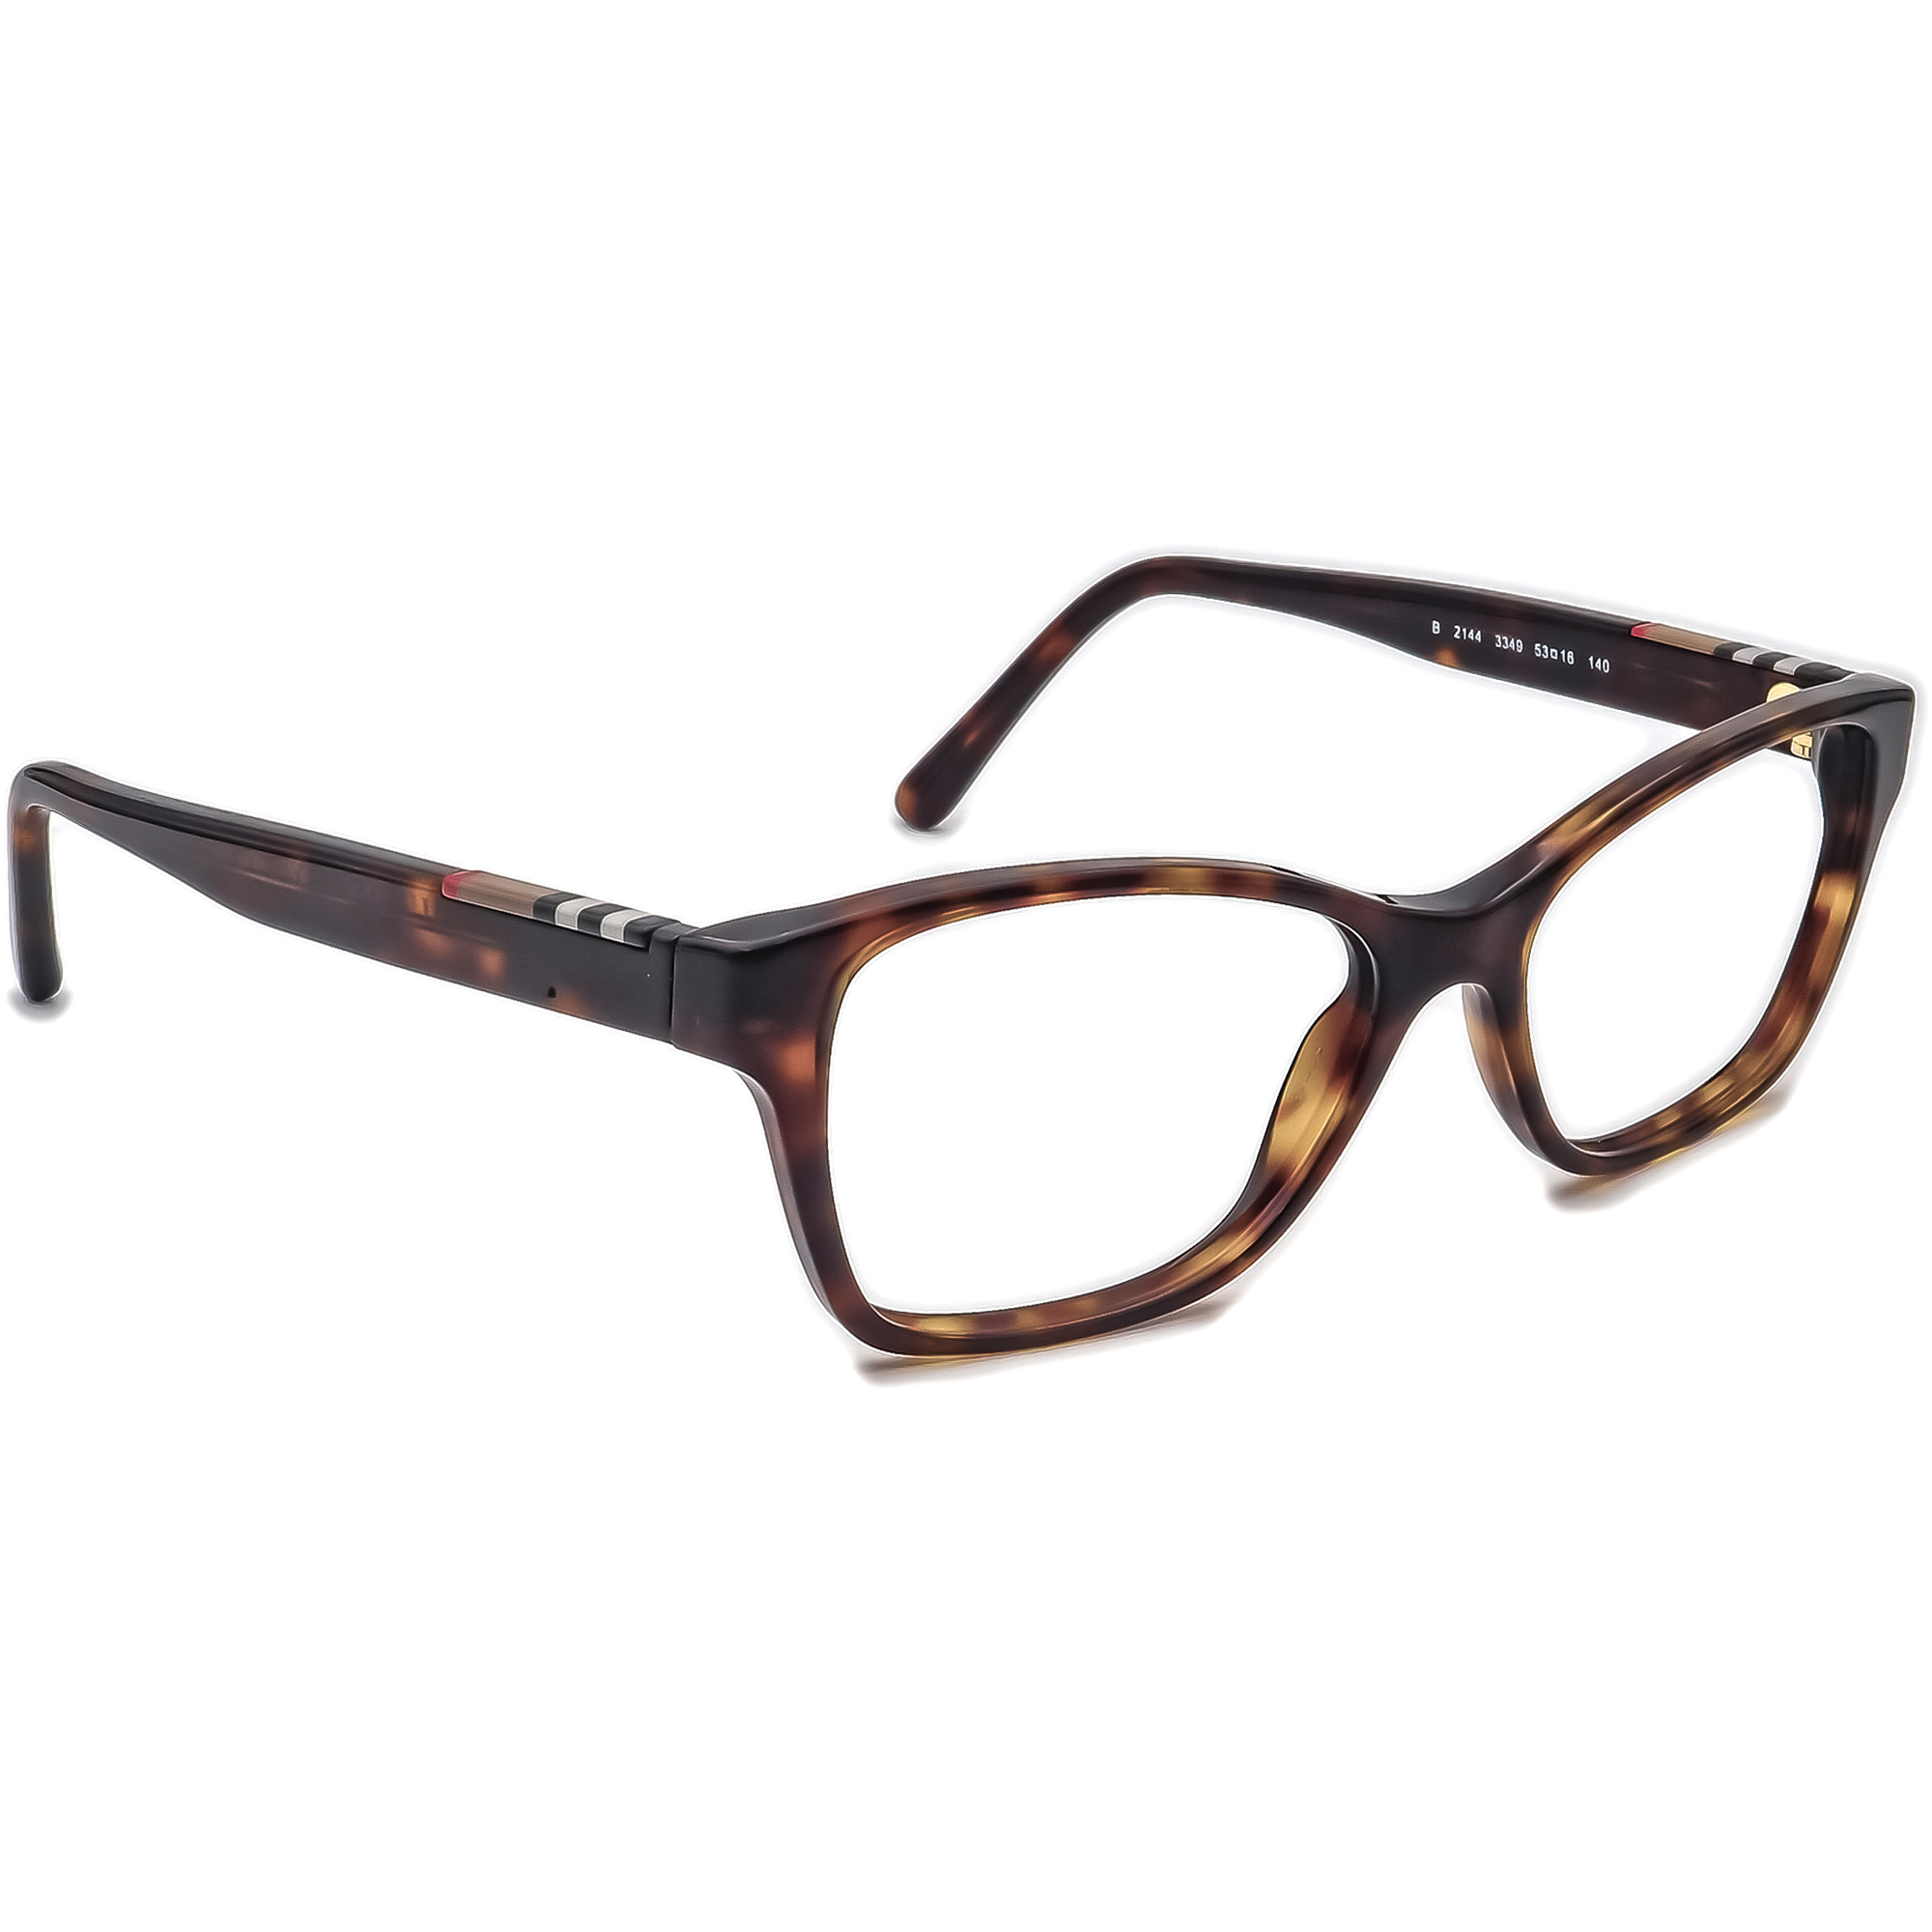 Burberry B 2144 3349 Eyeglasses